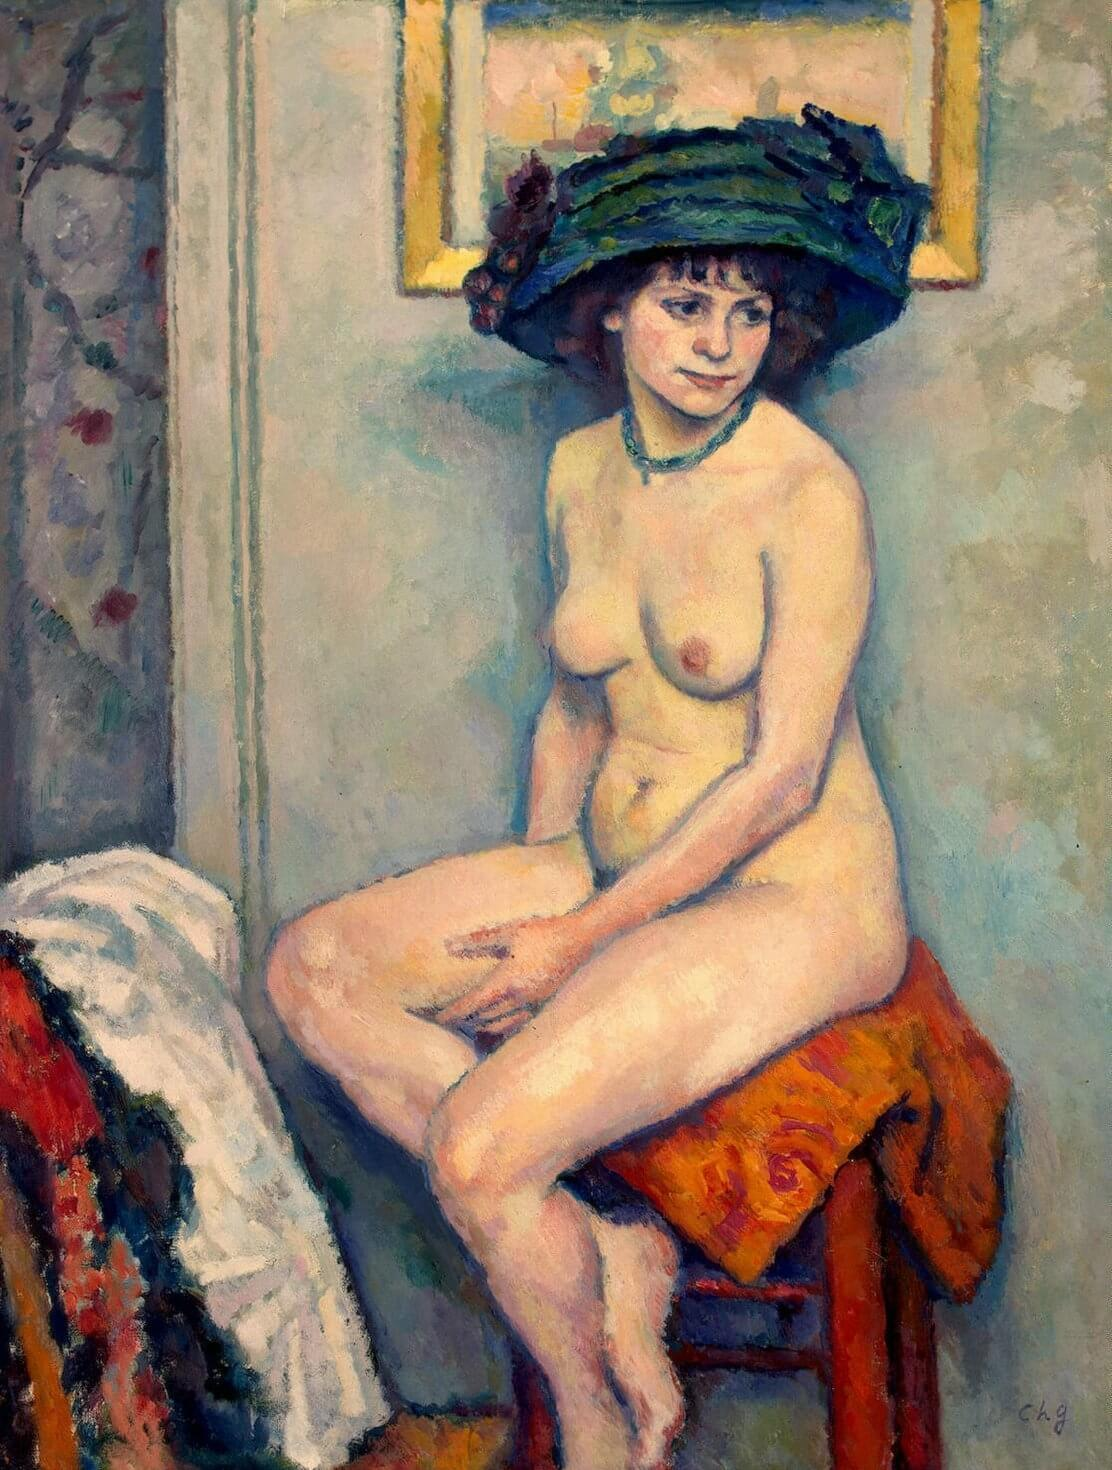 Art Canada Institute, Charles Guérin, Nude, 1907